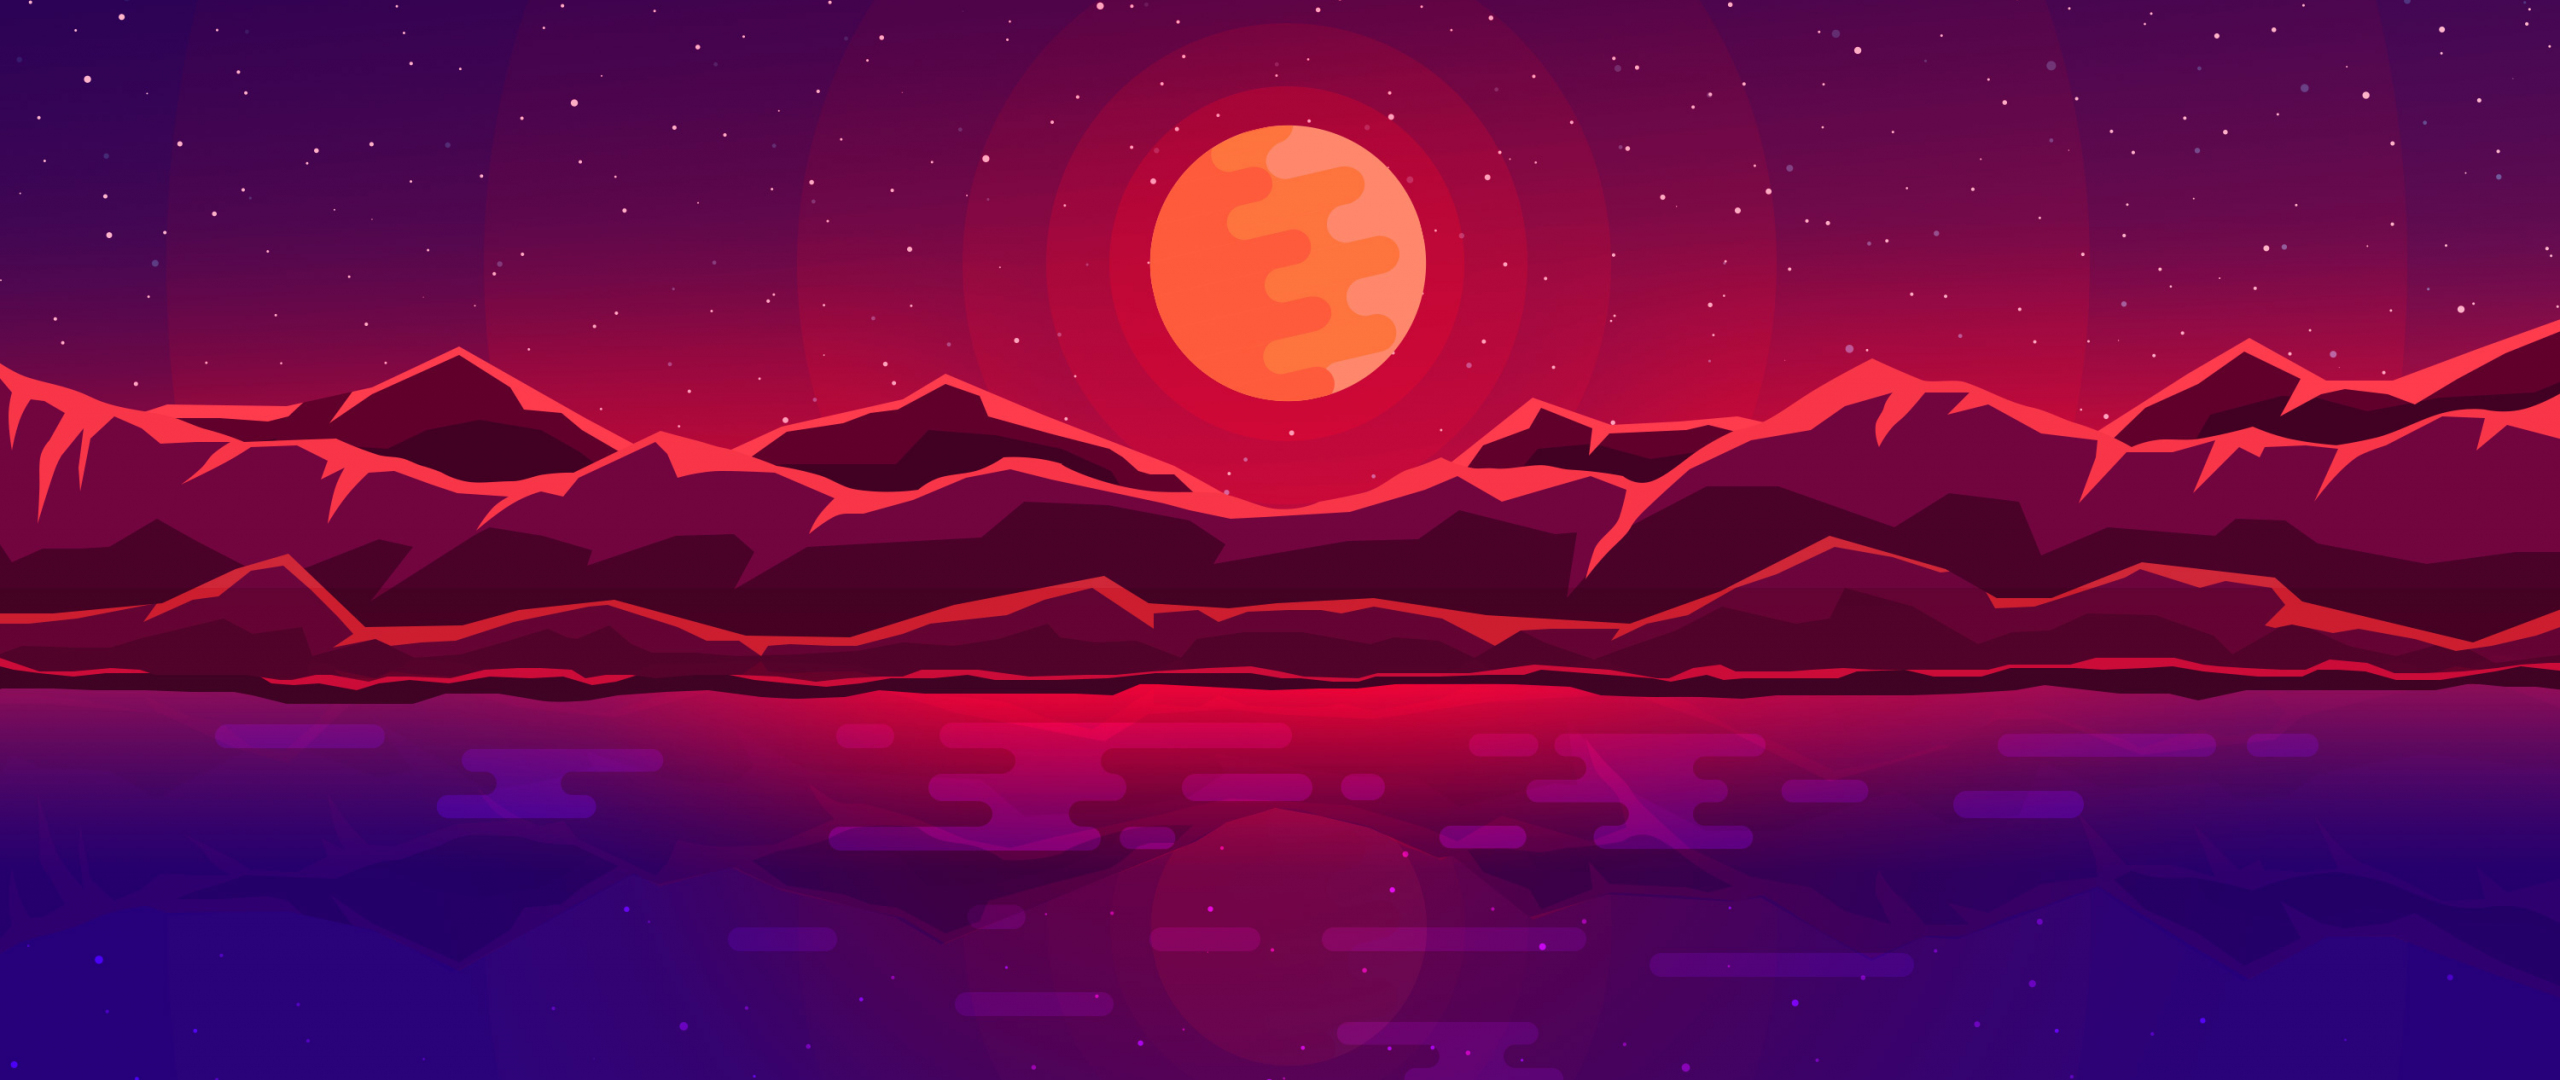 Download 2560x1080 Wallpaper Moon Rays Red Space Sky